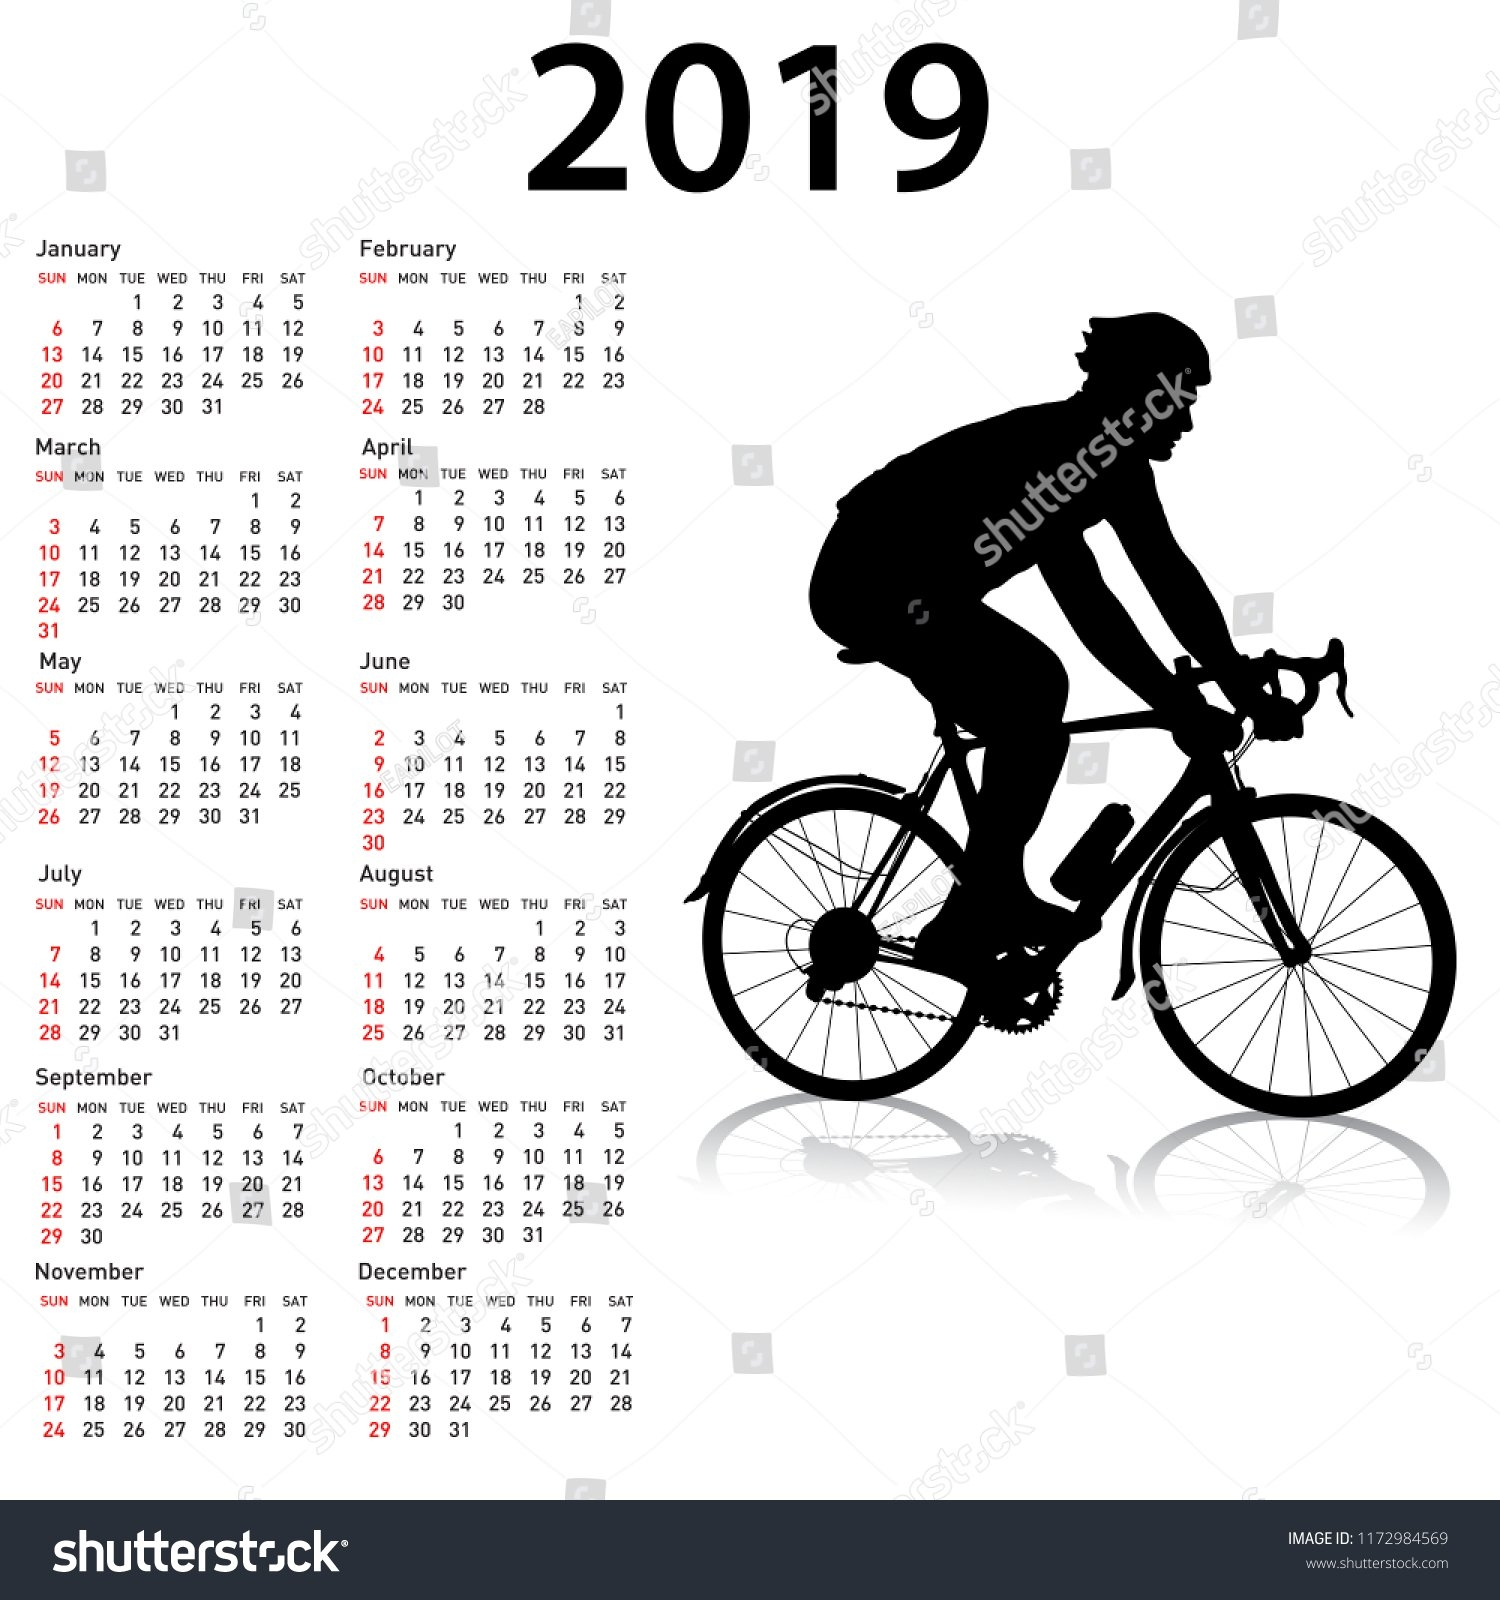 Sports Calendar 2019 Week Starts Sunday Stock Illustration 4 Week Period Calendar 2019